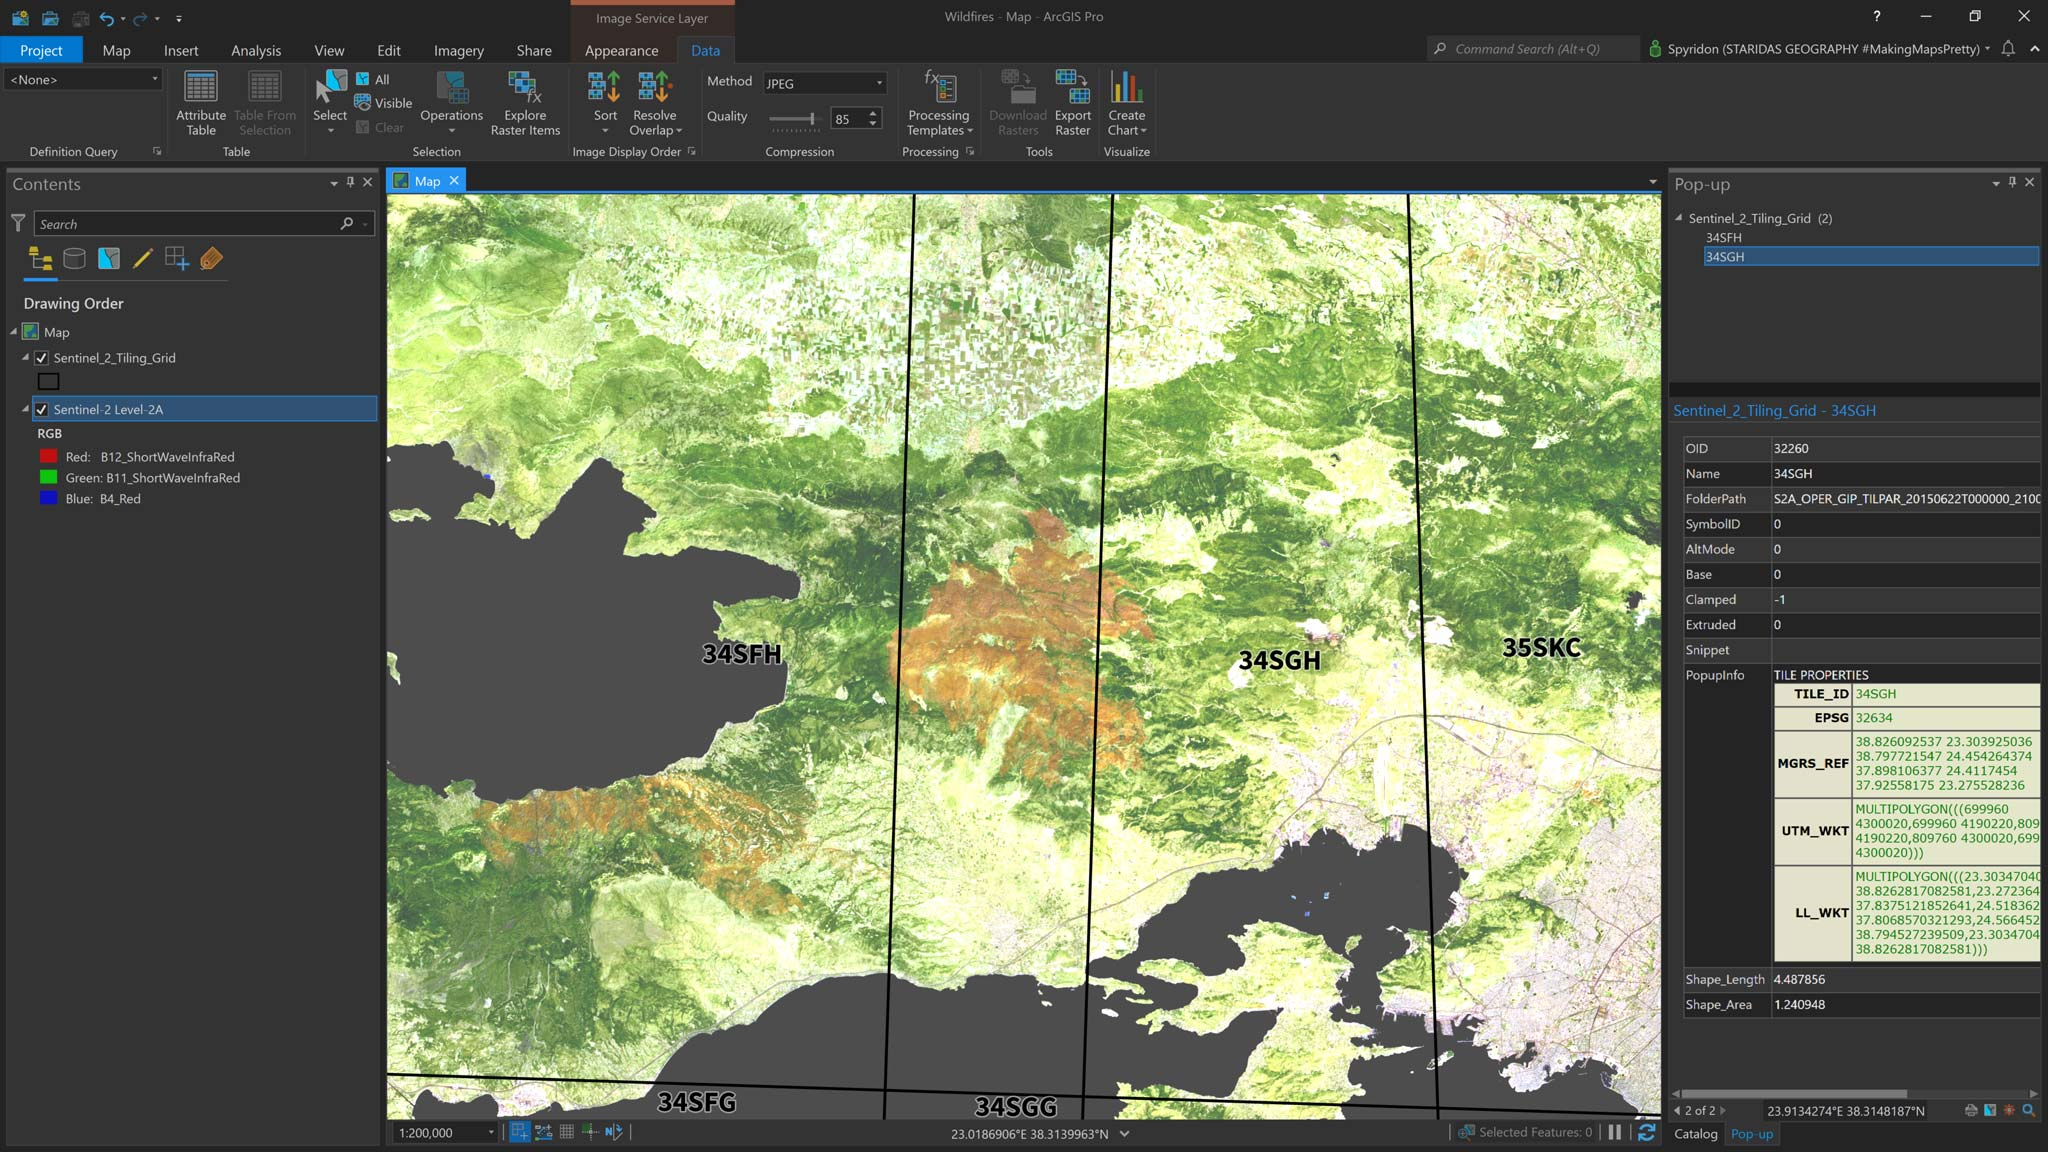 Picture 2: Changing the band combination of the Sentinel-2 imagery layer and loading the Sentinel-2 Tiling Grid.